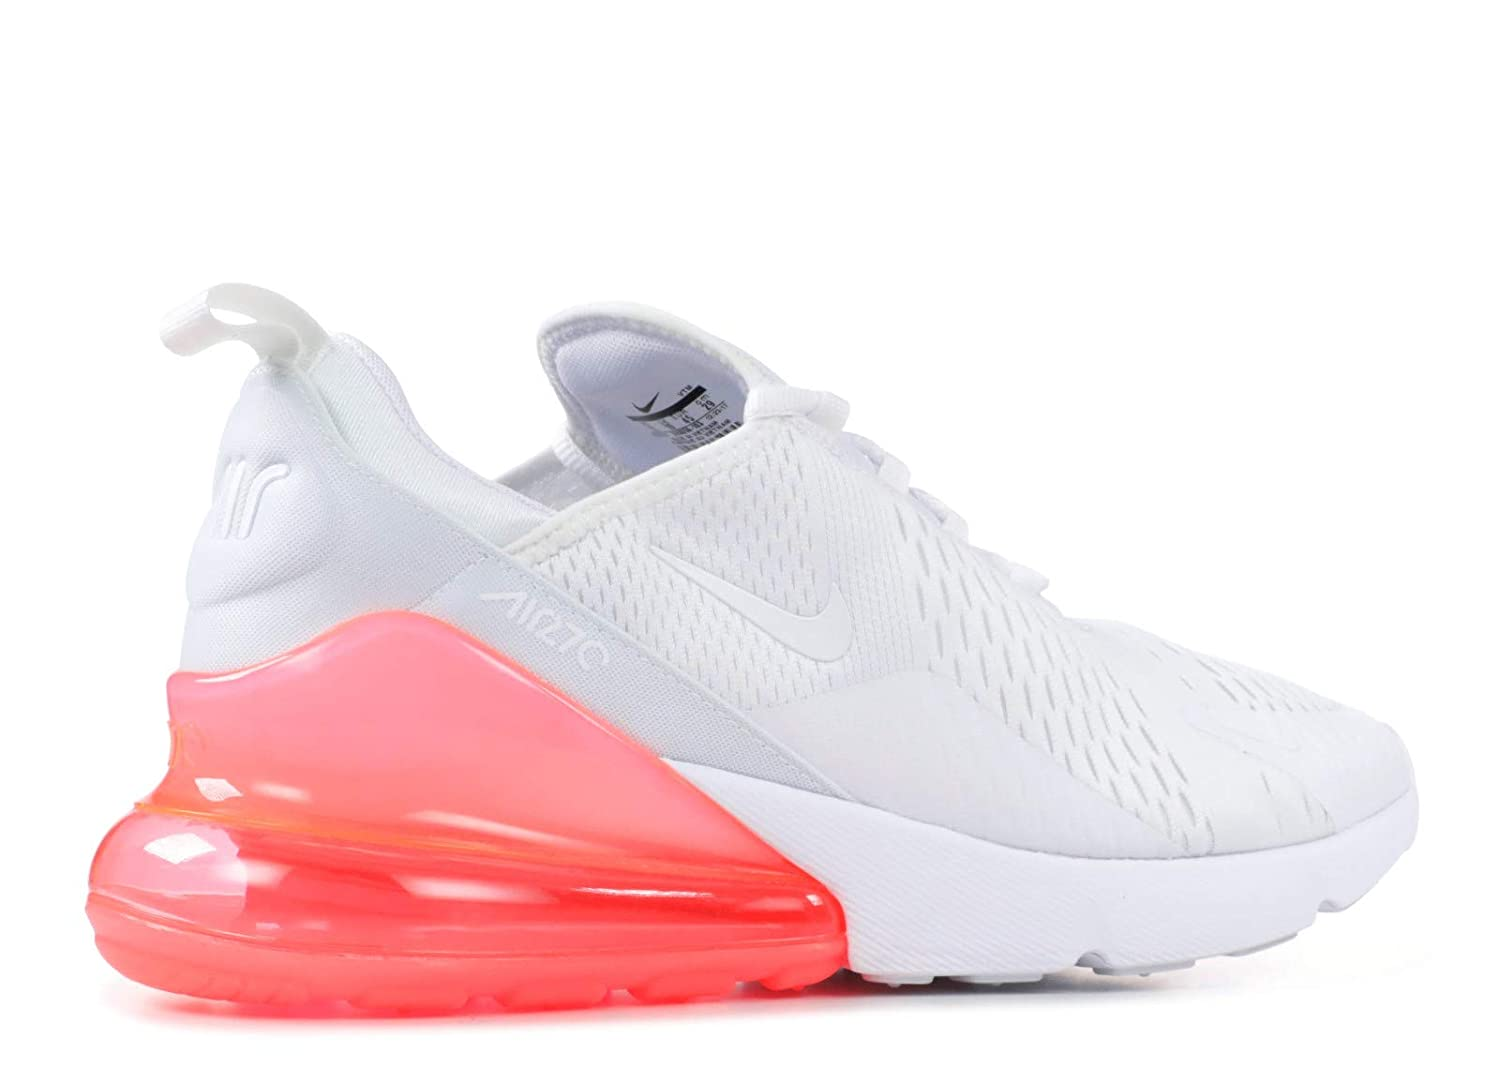 Nike Air Max 270 White Pack Hot Punch